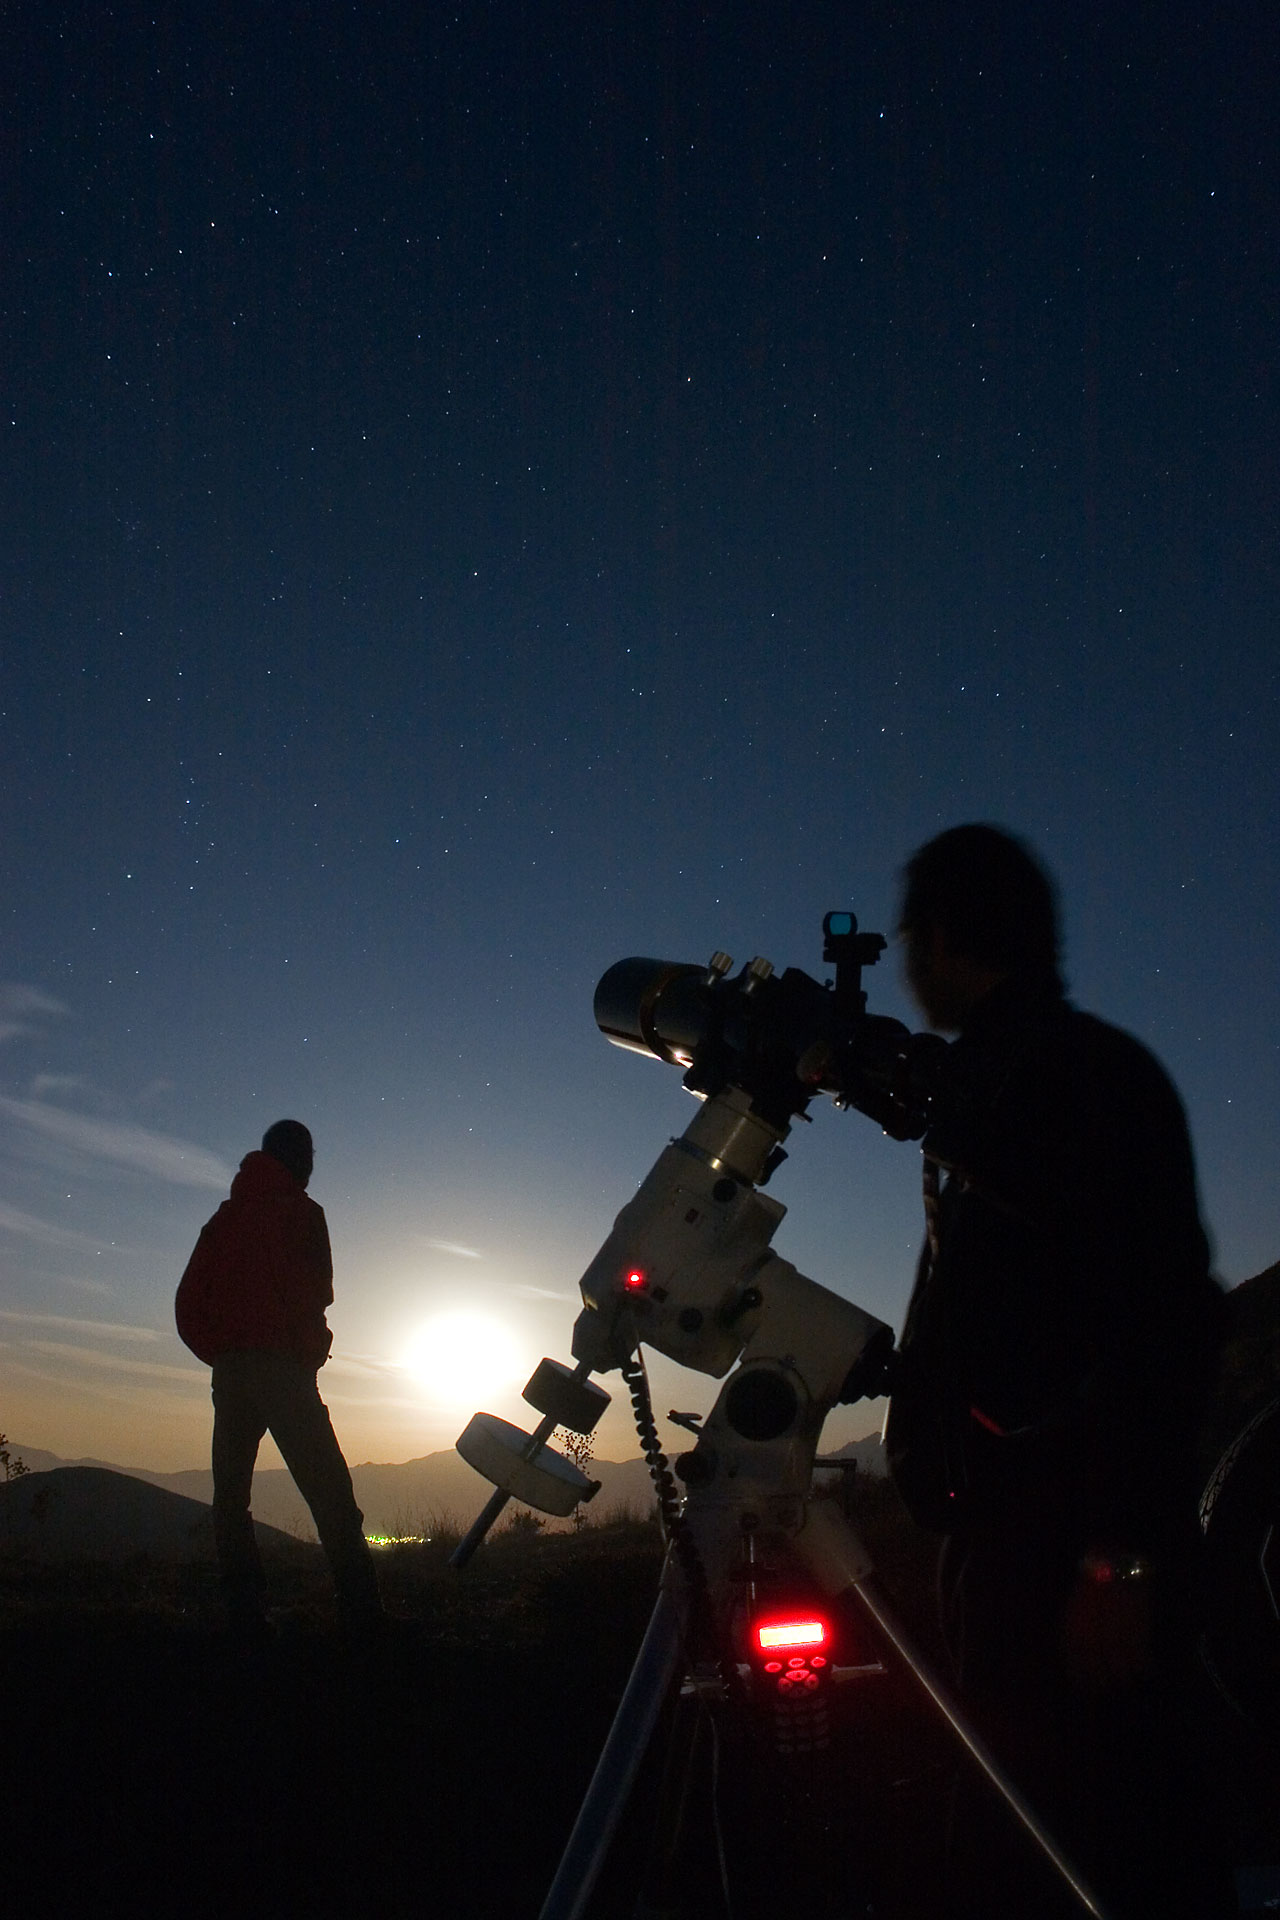 For 100 hours, from 2 to 5 April 2009, amateur astronomers, ...